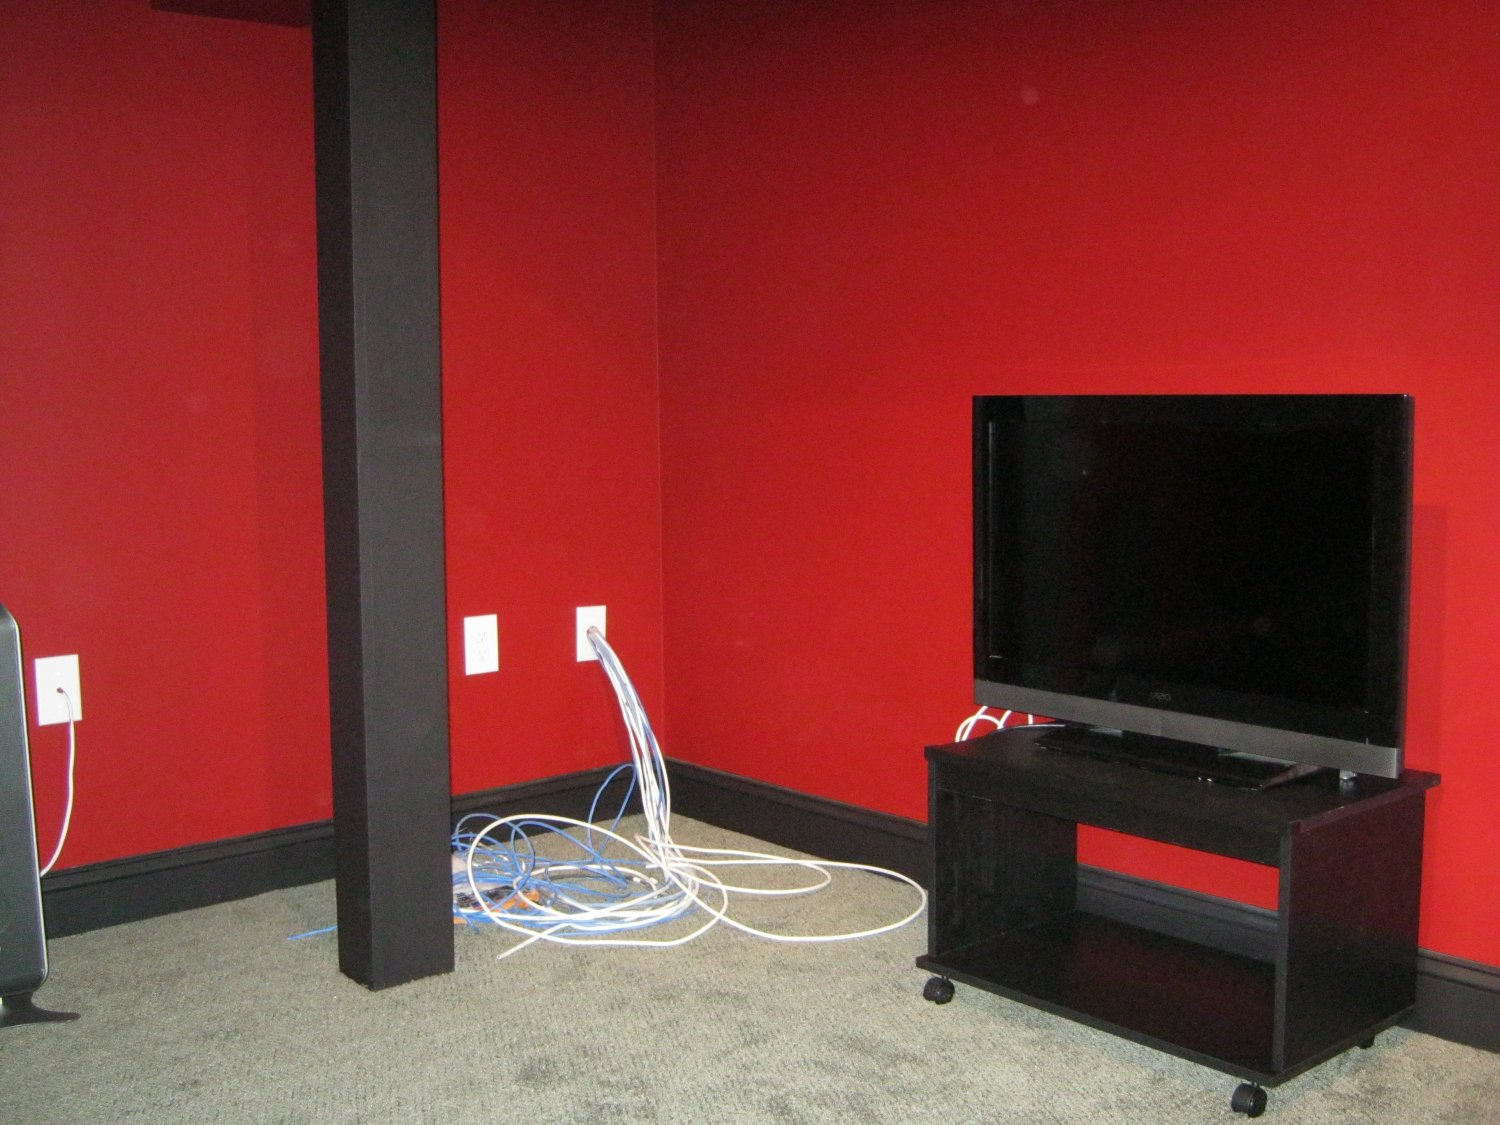 alcove tv Building a Home Theater, Step 5: The When Will This Ever Be Done? Phase